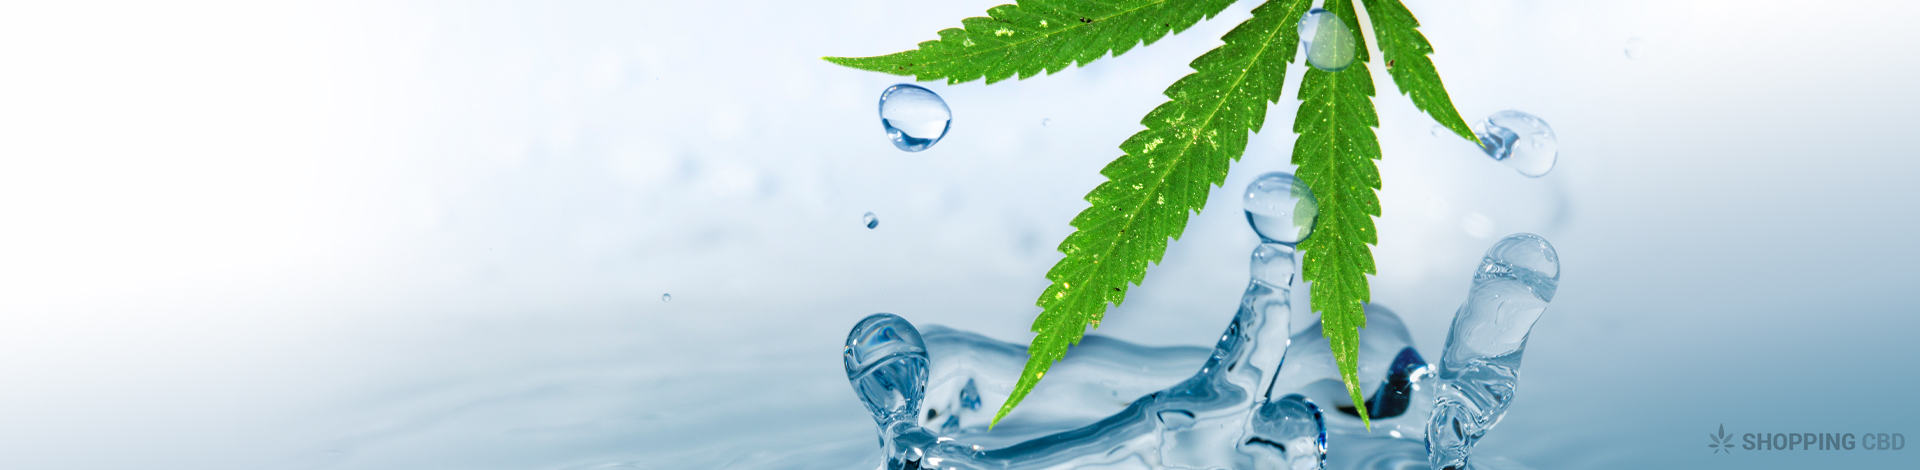 CBD Water: Things You Need to Know